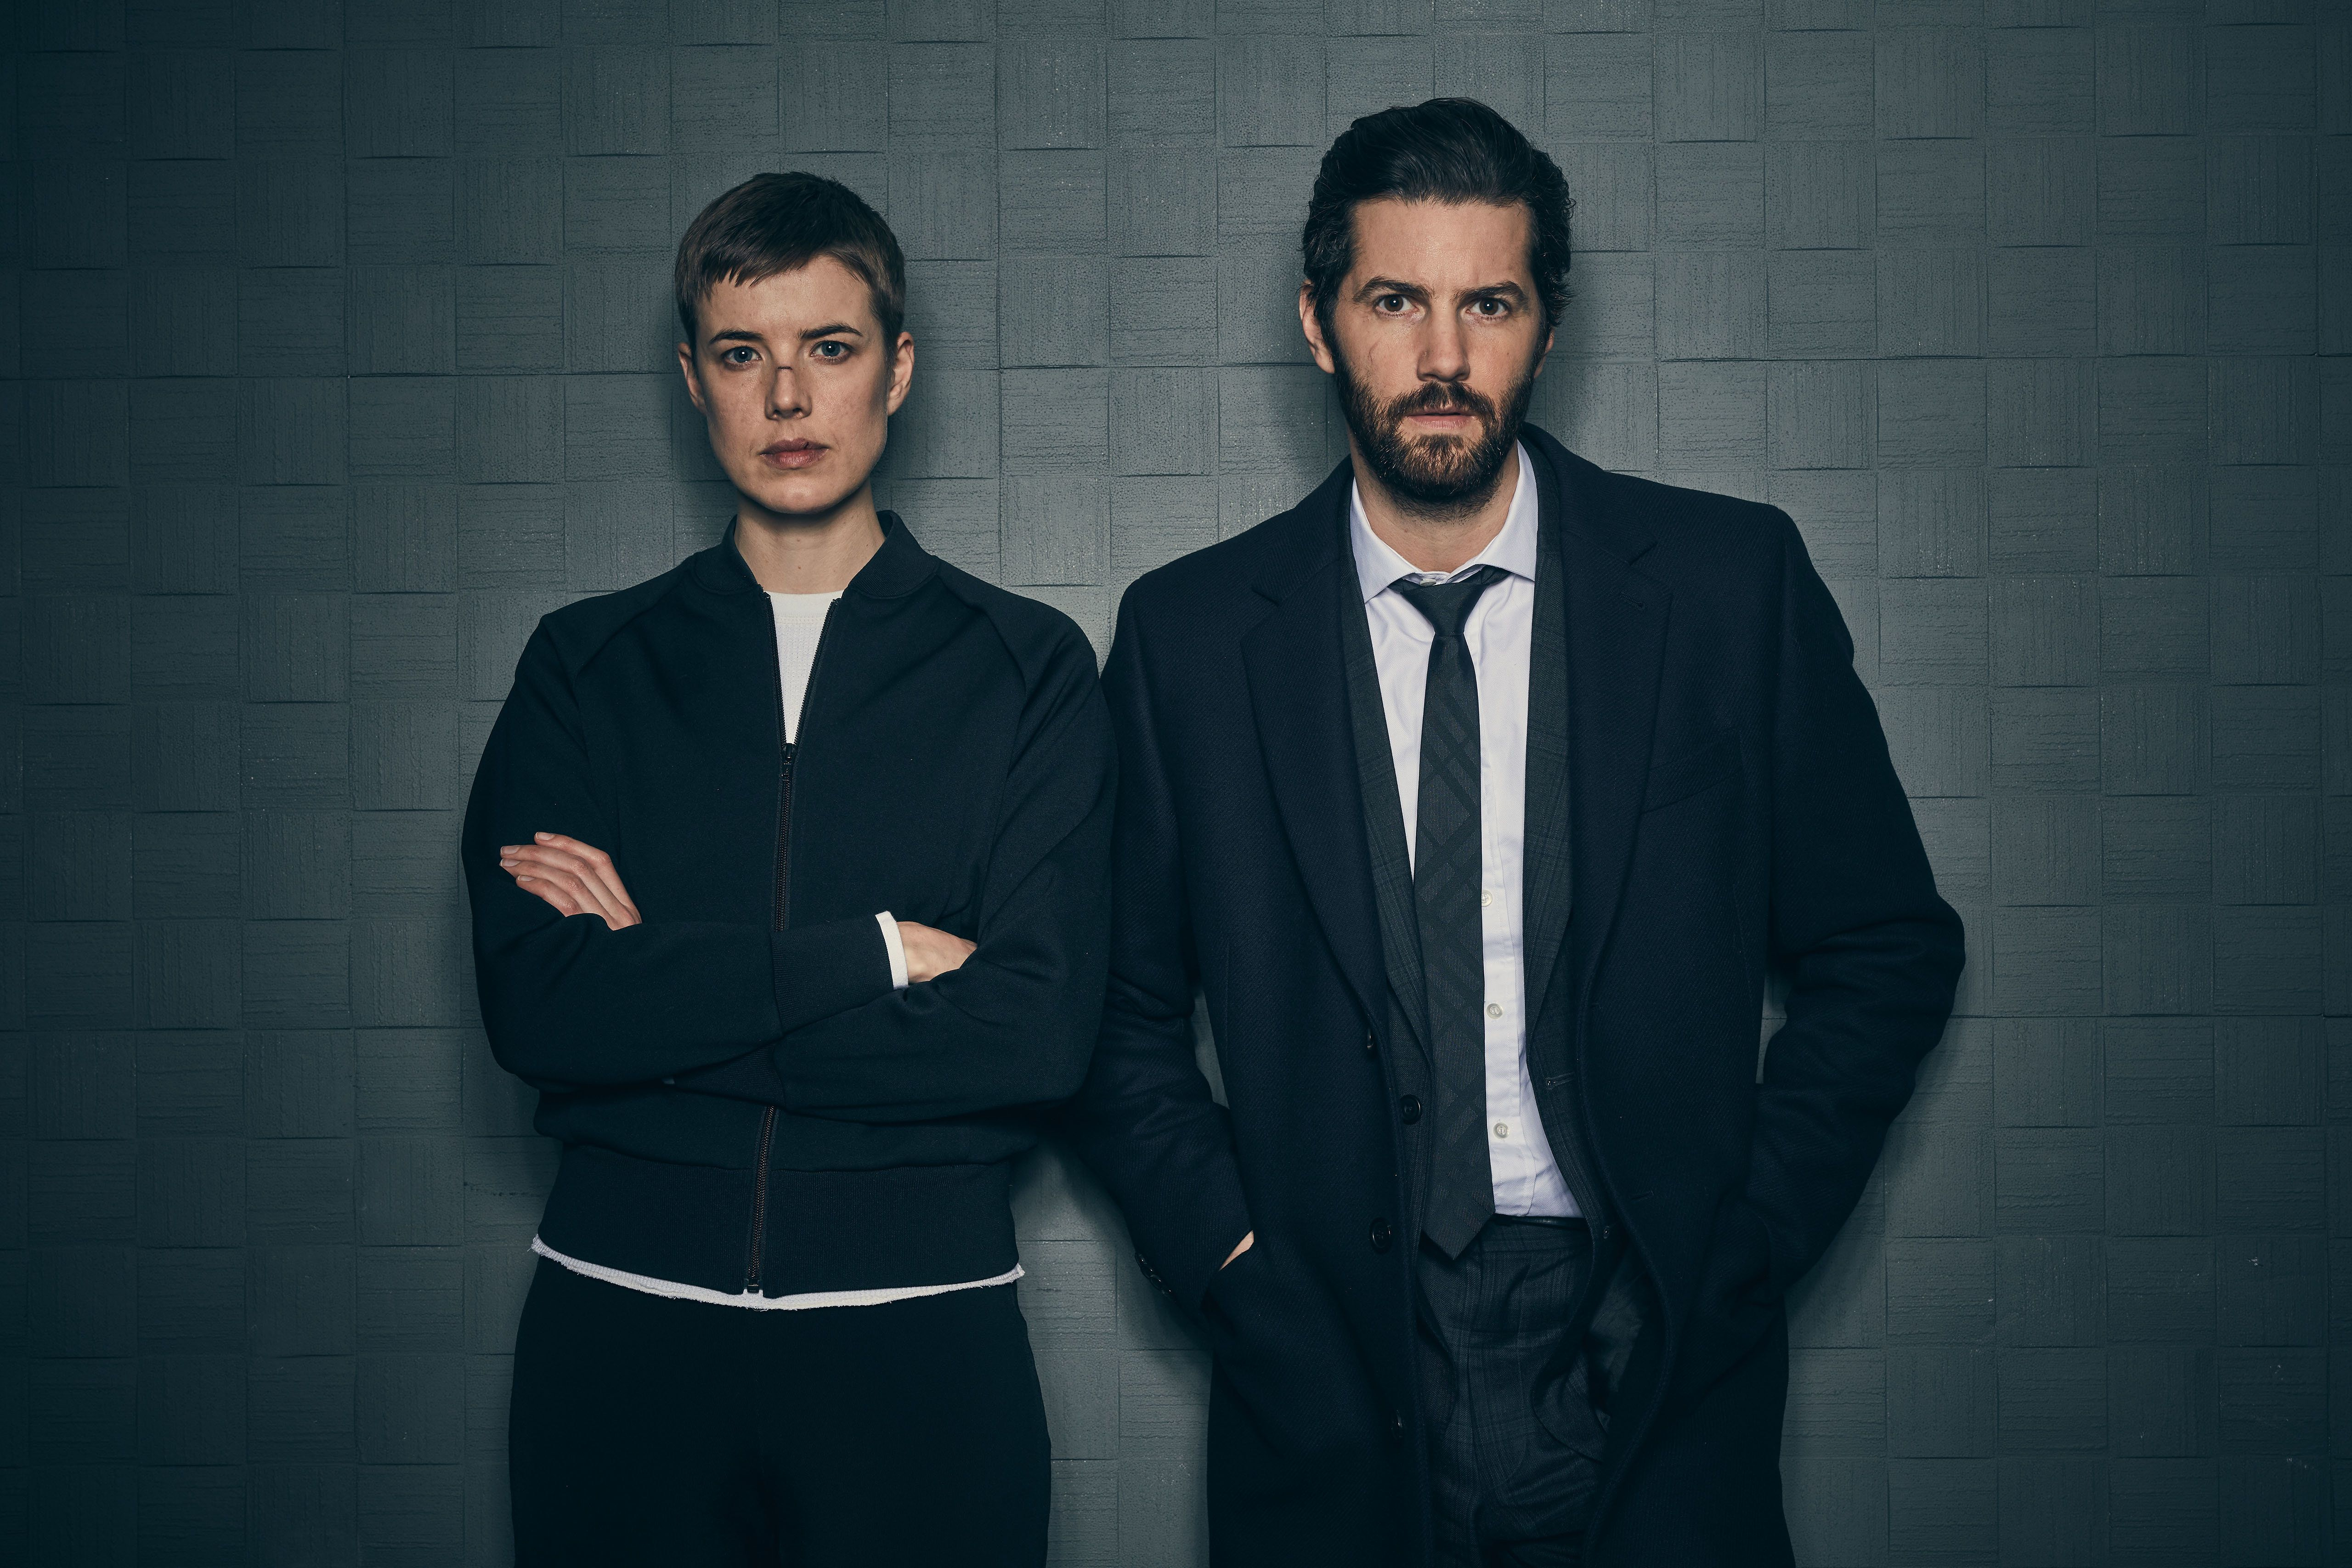 <strong>Agyness Deyn and Jim Sturgess star in the lead roles </strong>